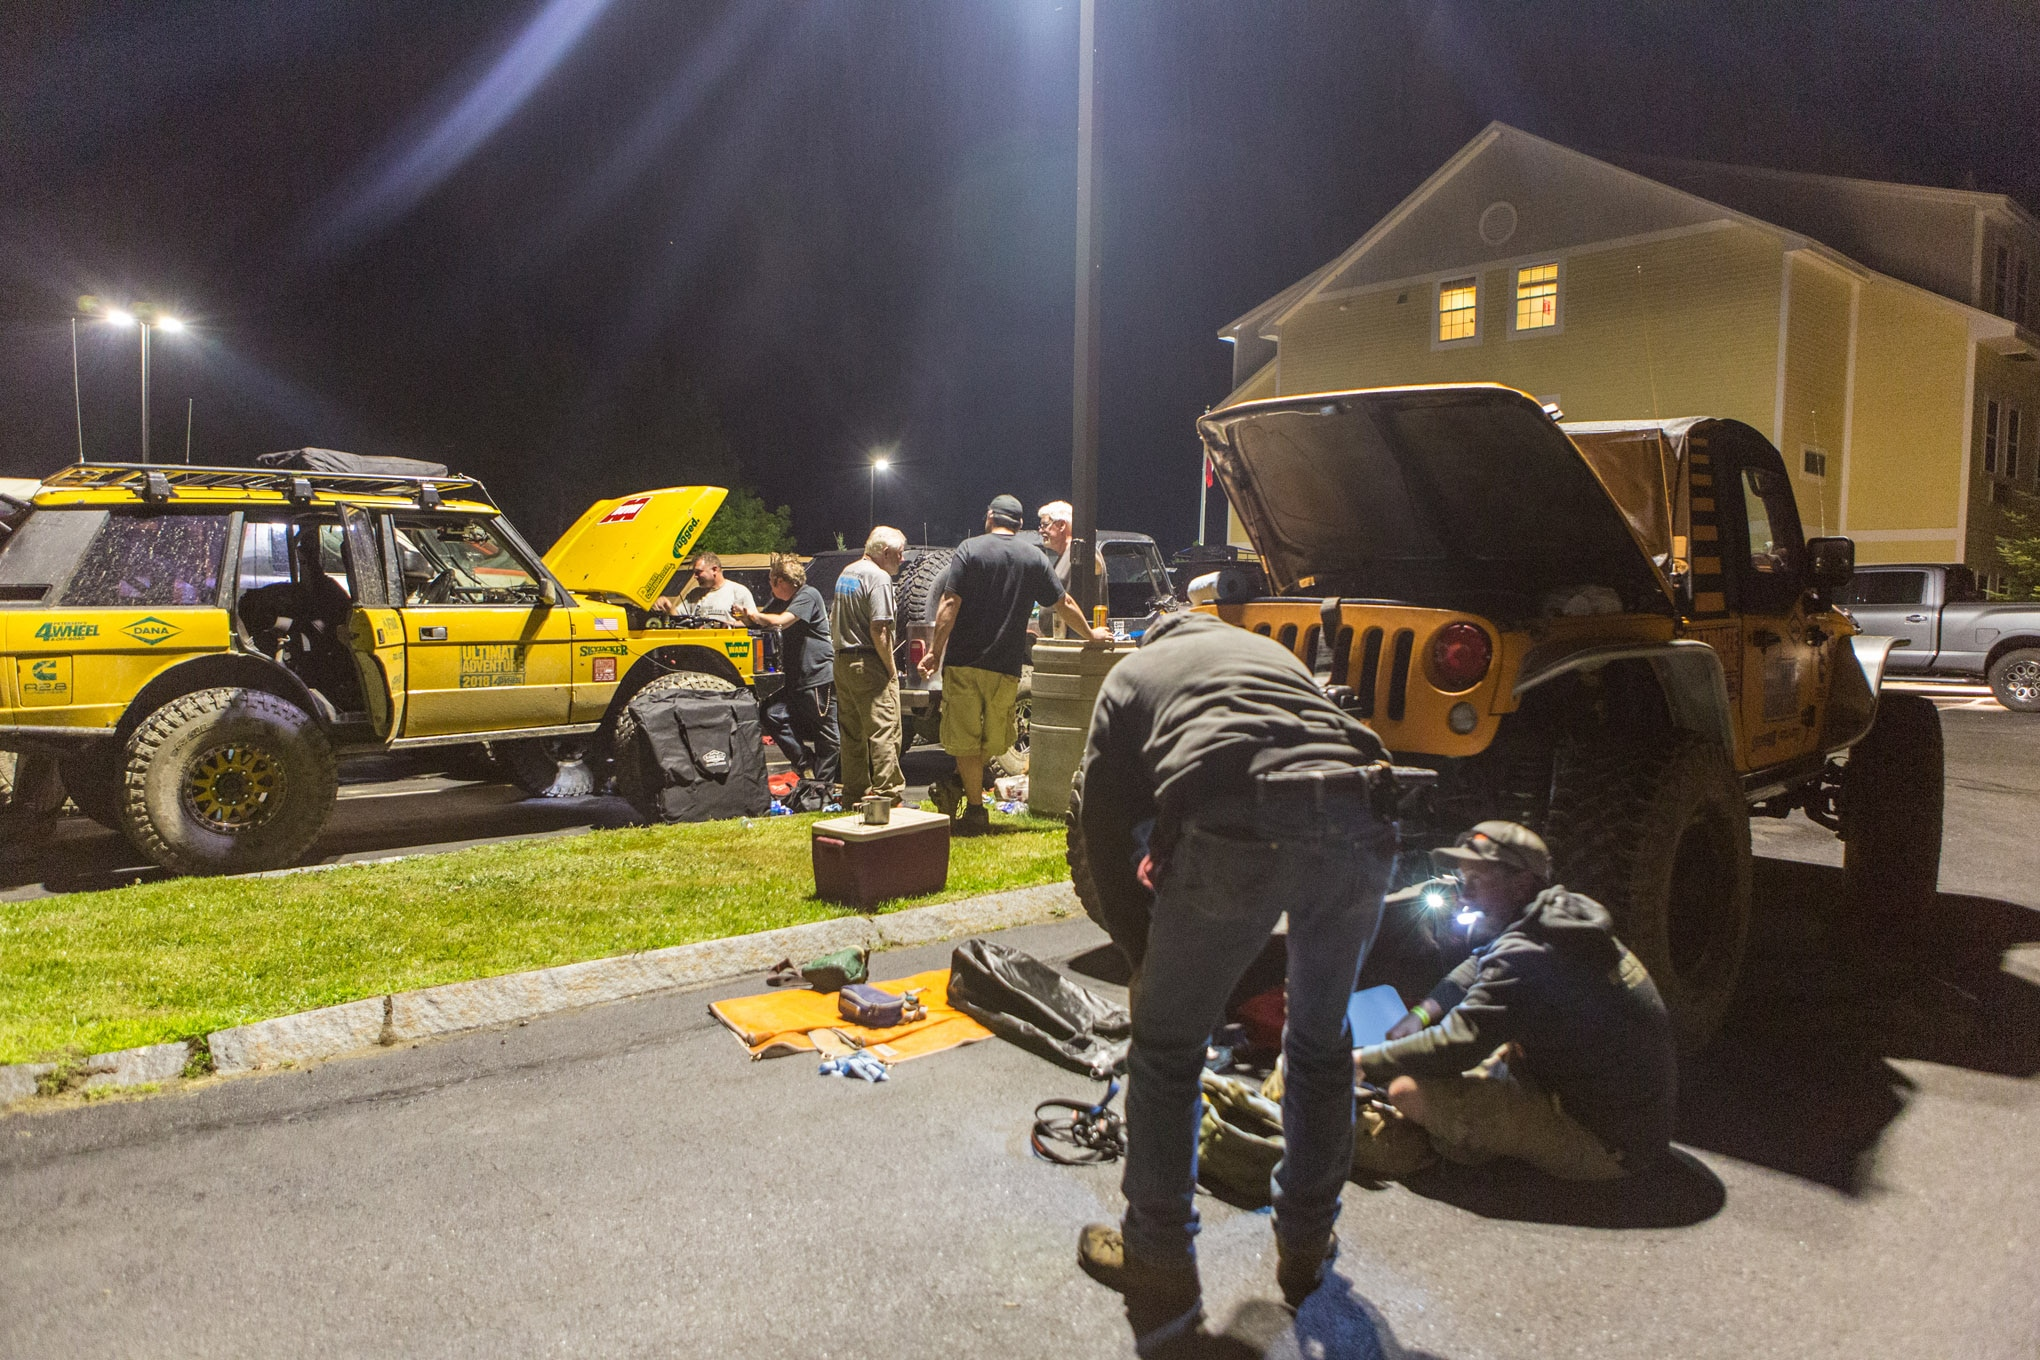 The end of each day was marked by repairs in campgrounds and hotel parking lots. Unlike last year, there was no catastrophic failures in 2018 and everyone made it to the finish line. Radiators and power steering pumps seemed to be the most common casualties this year, but each was dealt with quickly, and the group continued on together.